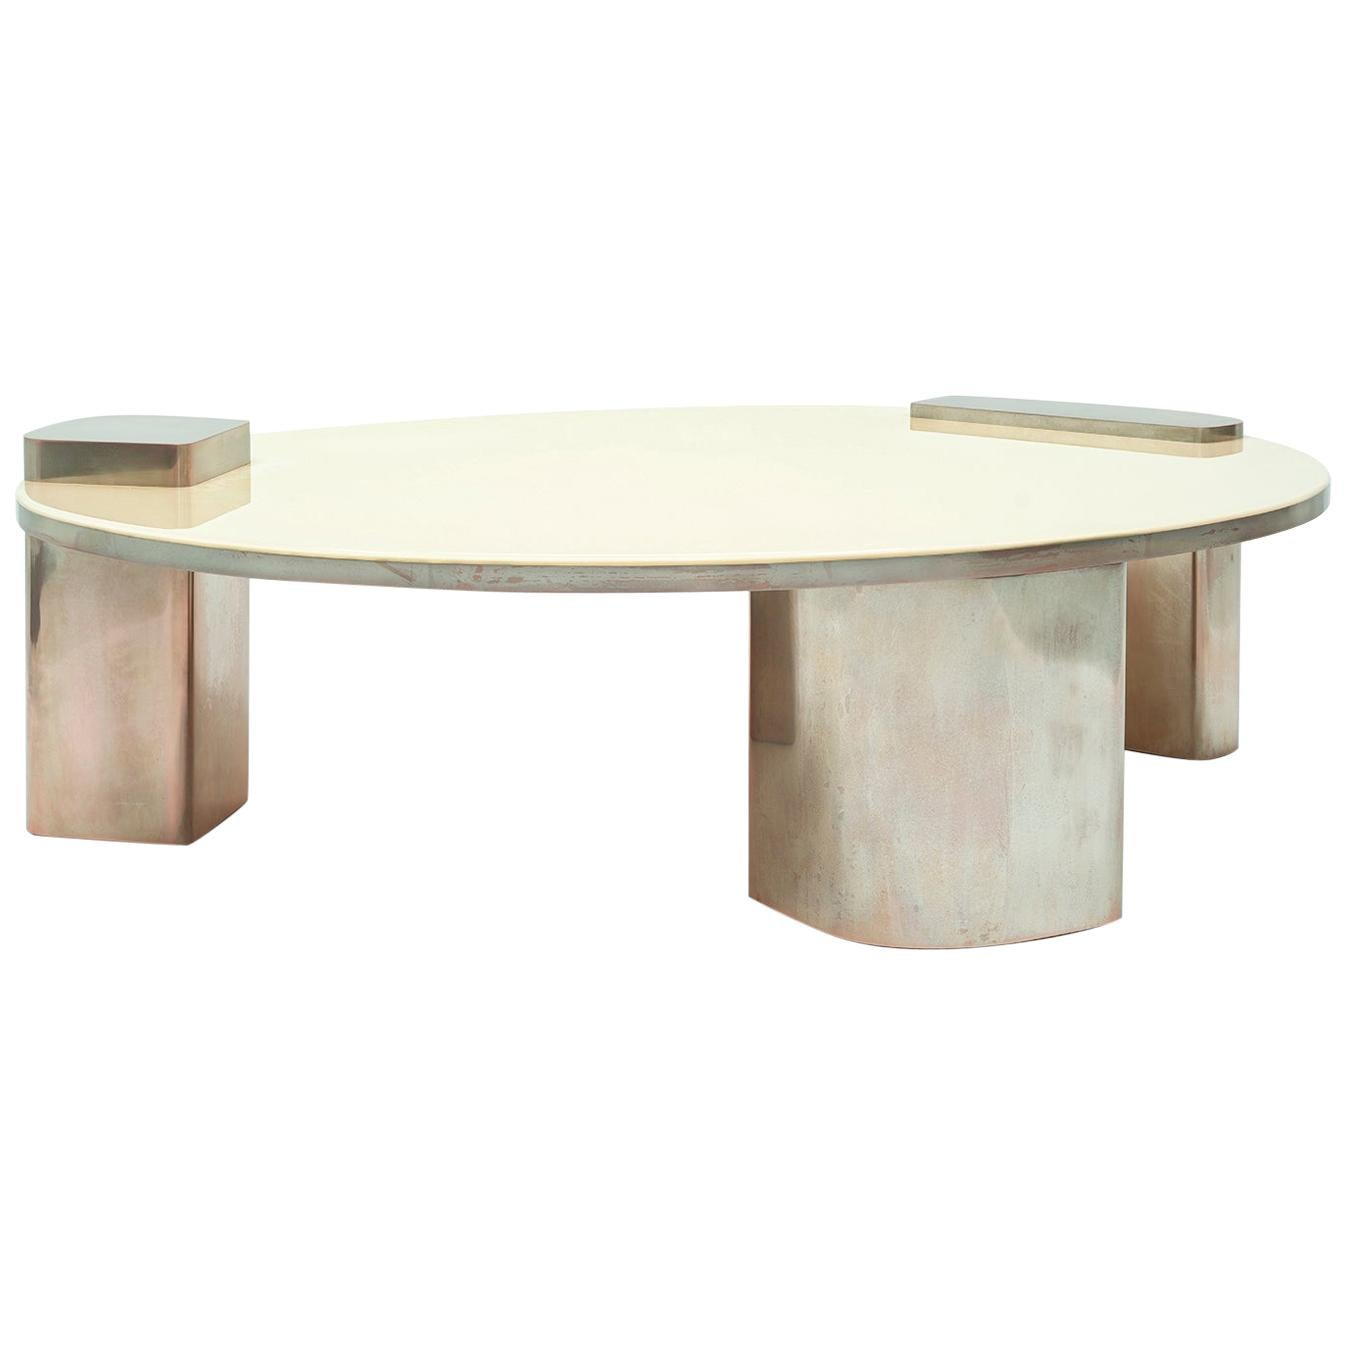 Blue Moom Mmxix, 21st Century Resin and Silvered Copper Oval Coffee Table